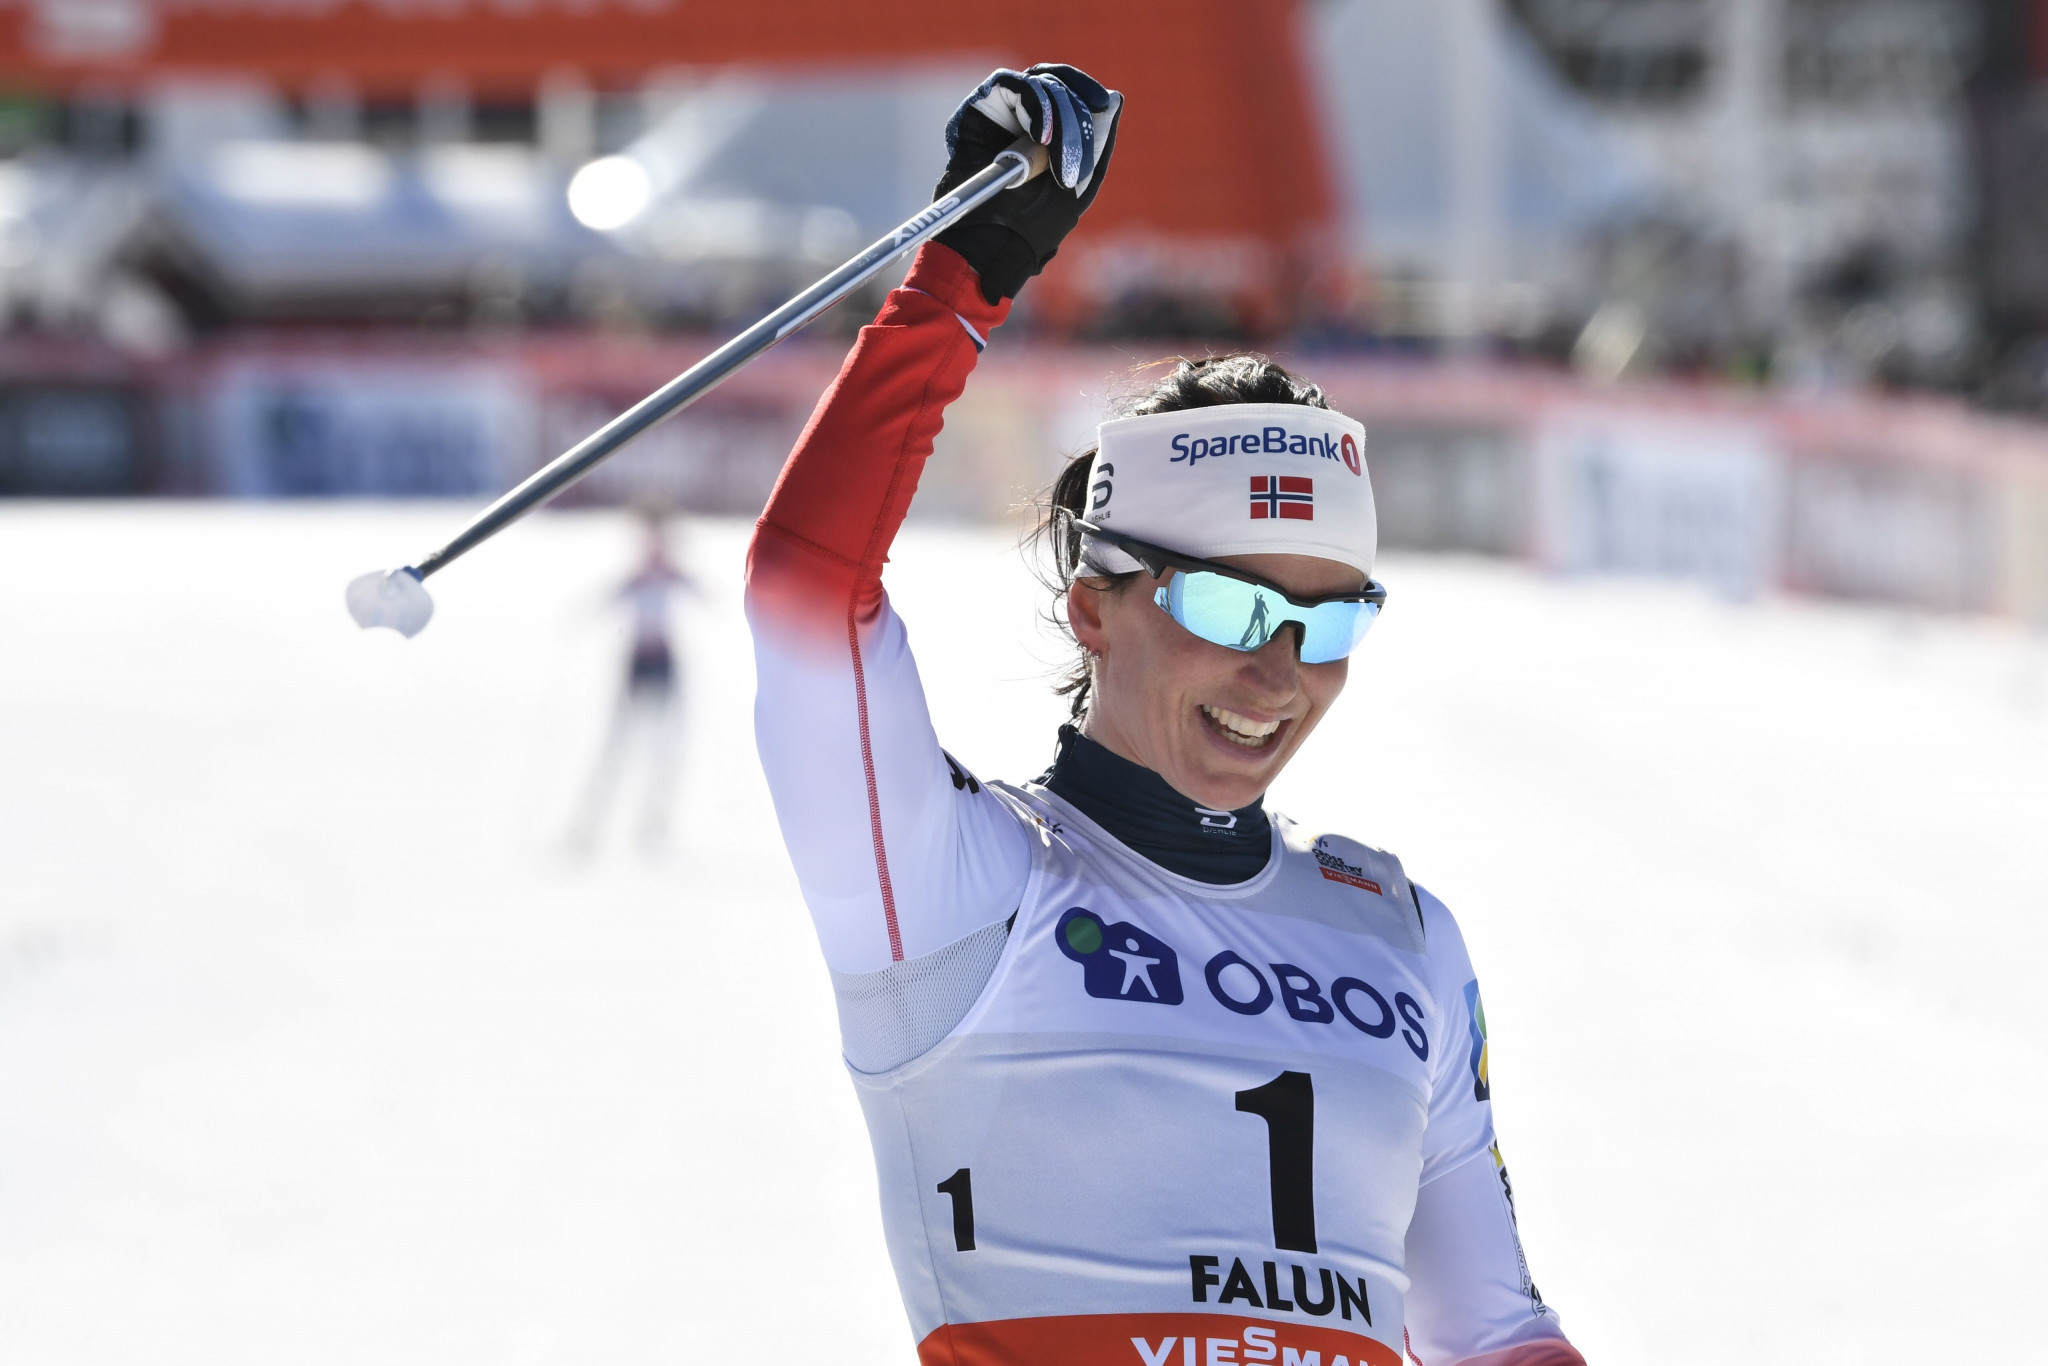 Fifteen-time Olympic medallist Bjørgen complains of faulty anti-doping containers at Pyeongchang 2018